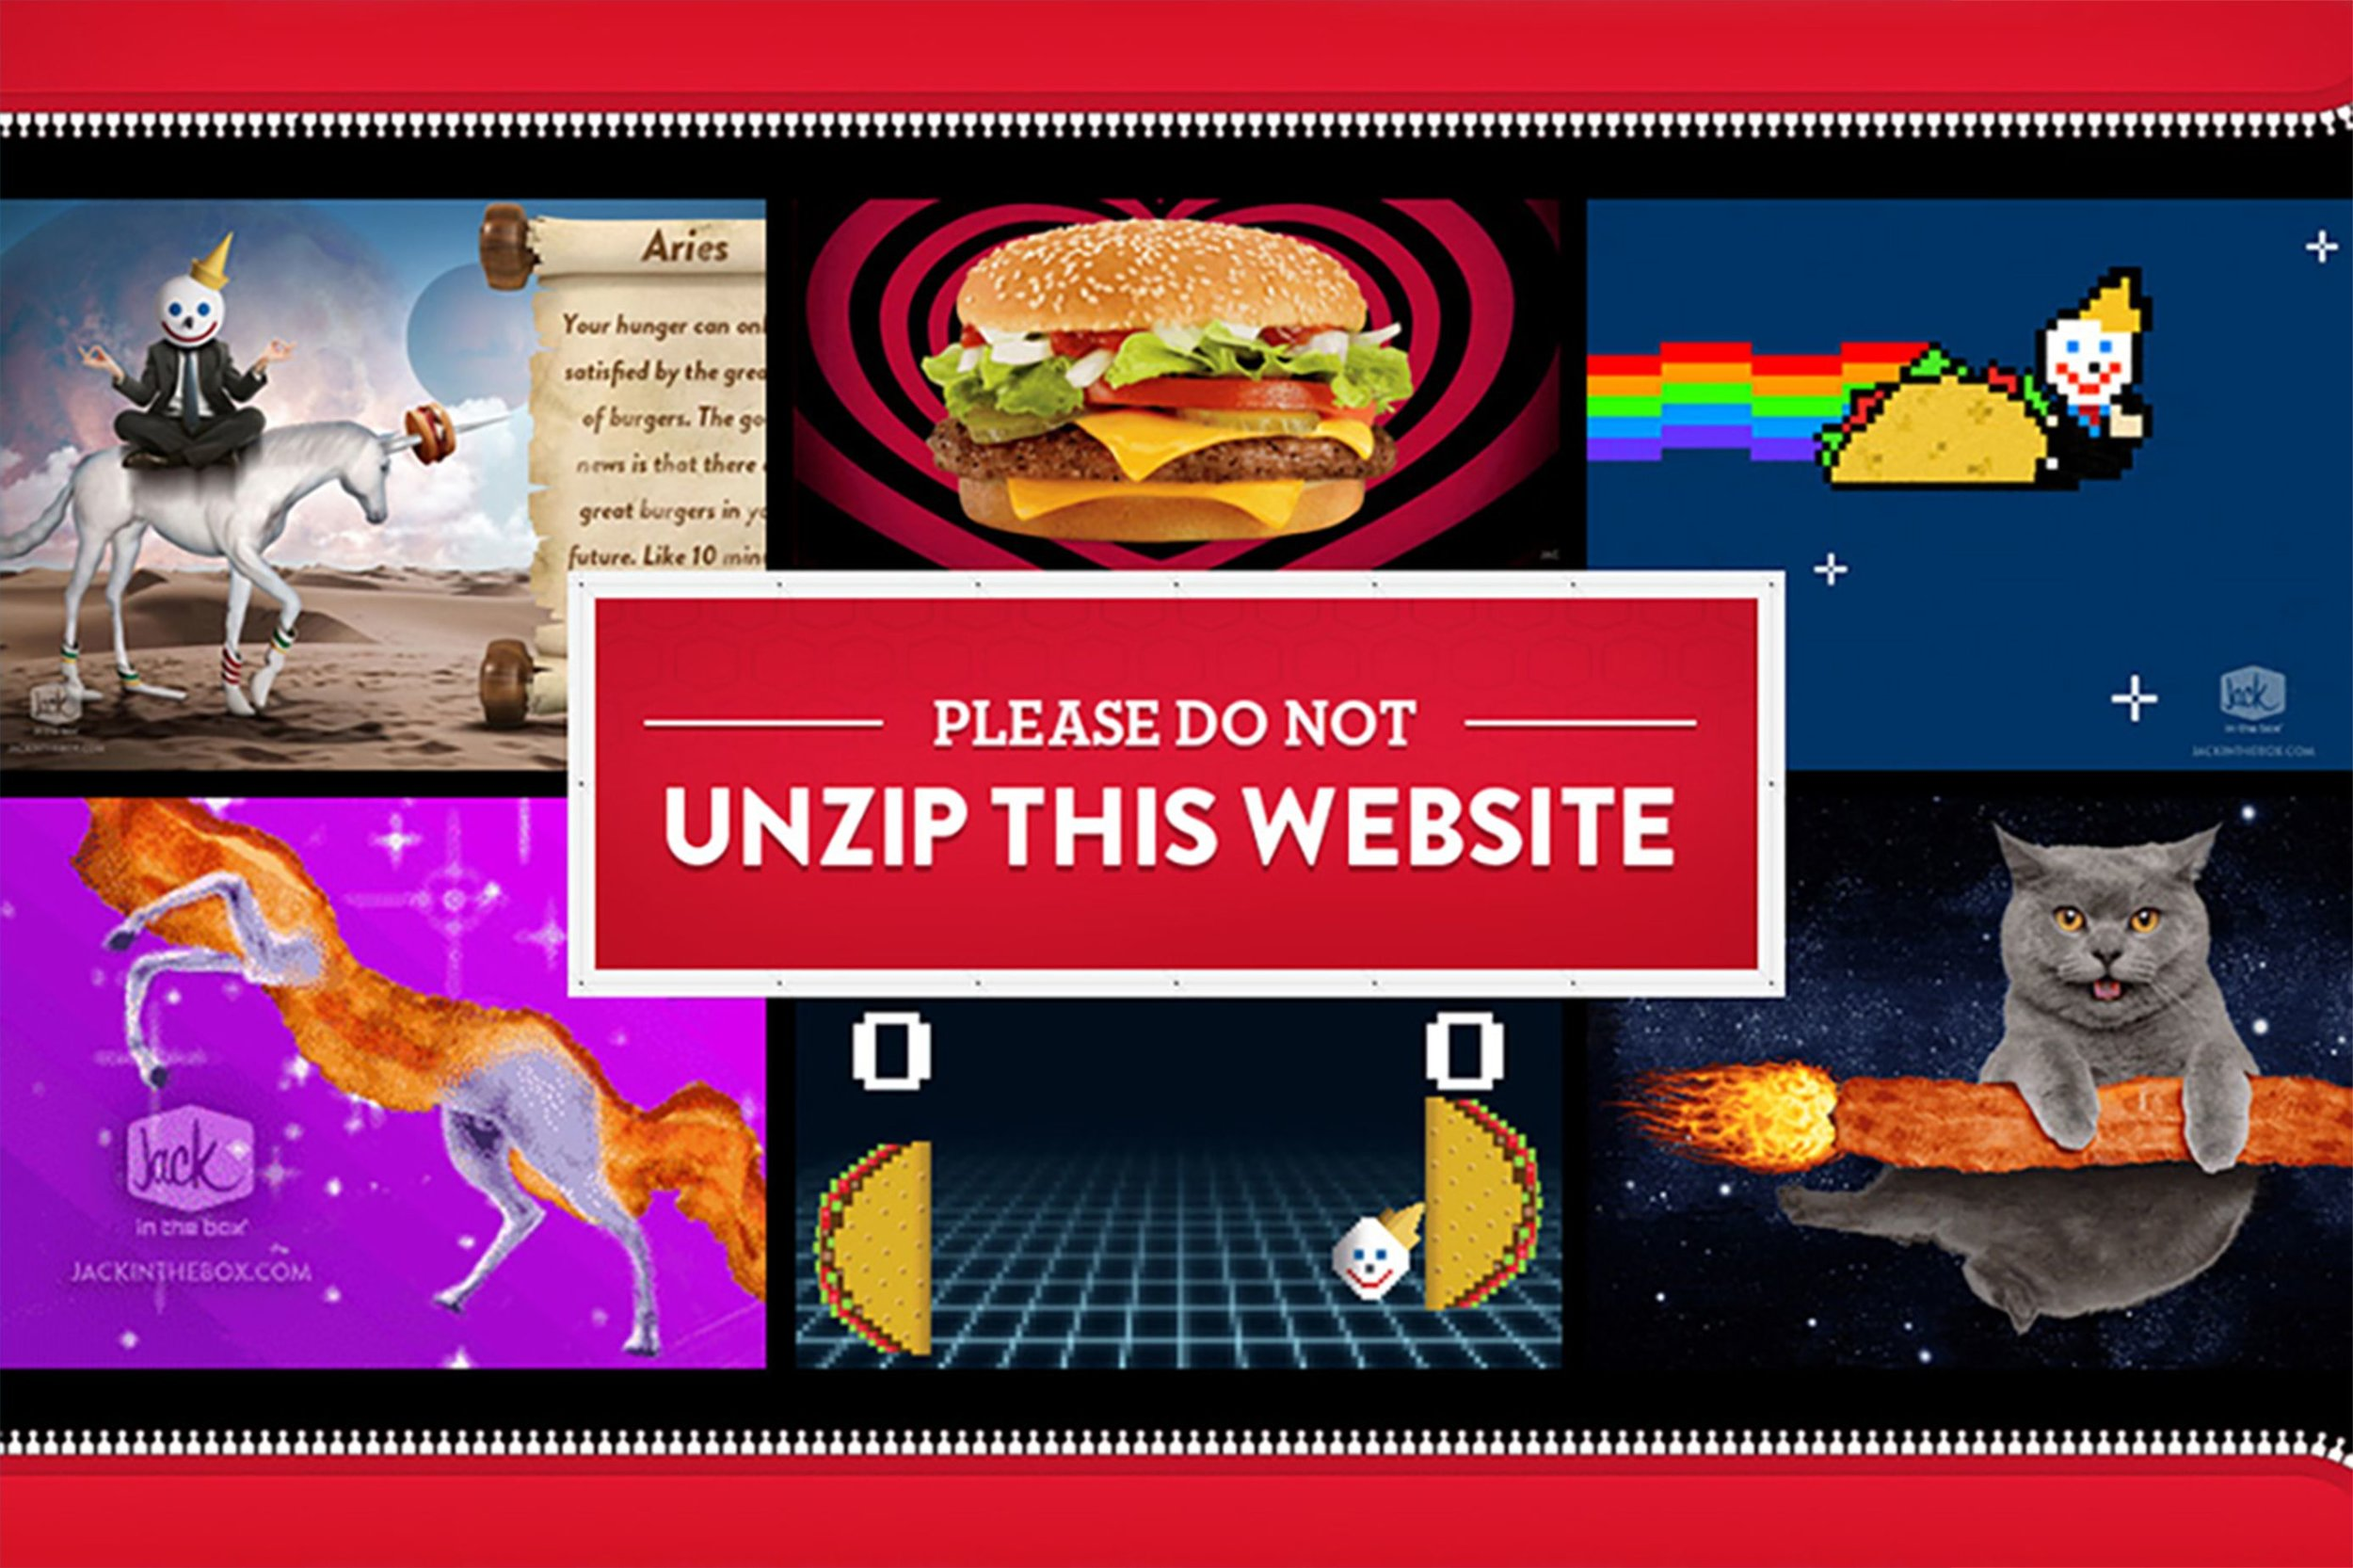 Please Do Not Unzip This website page